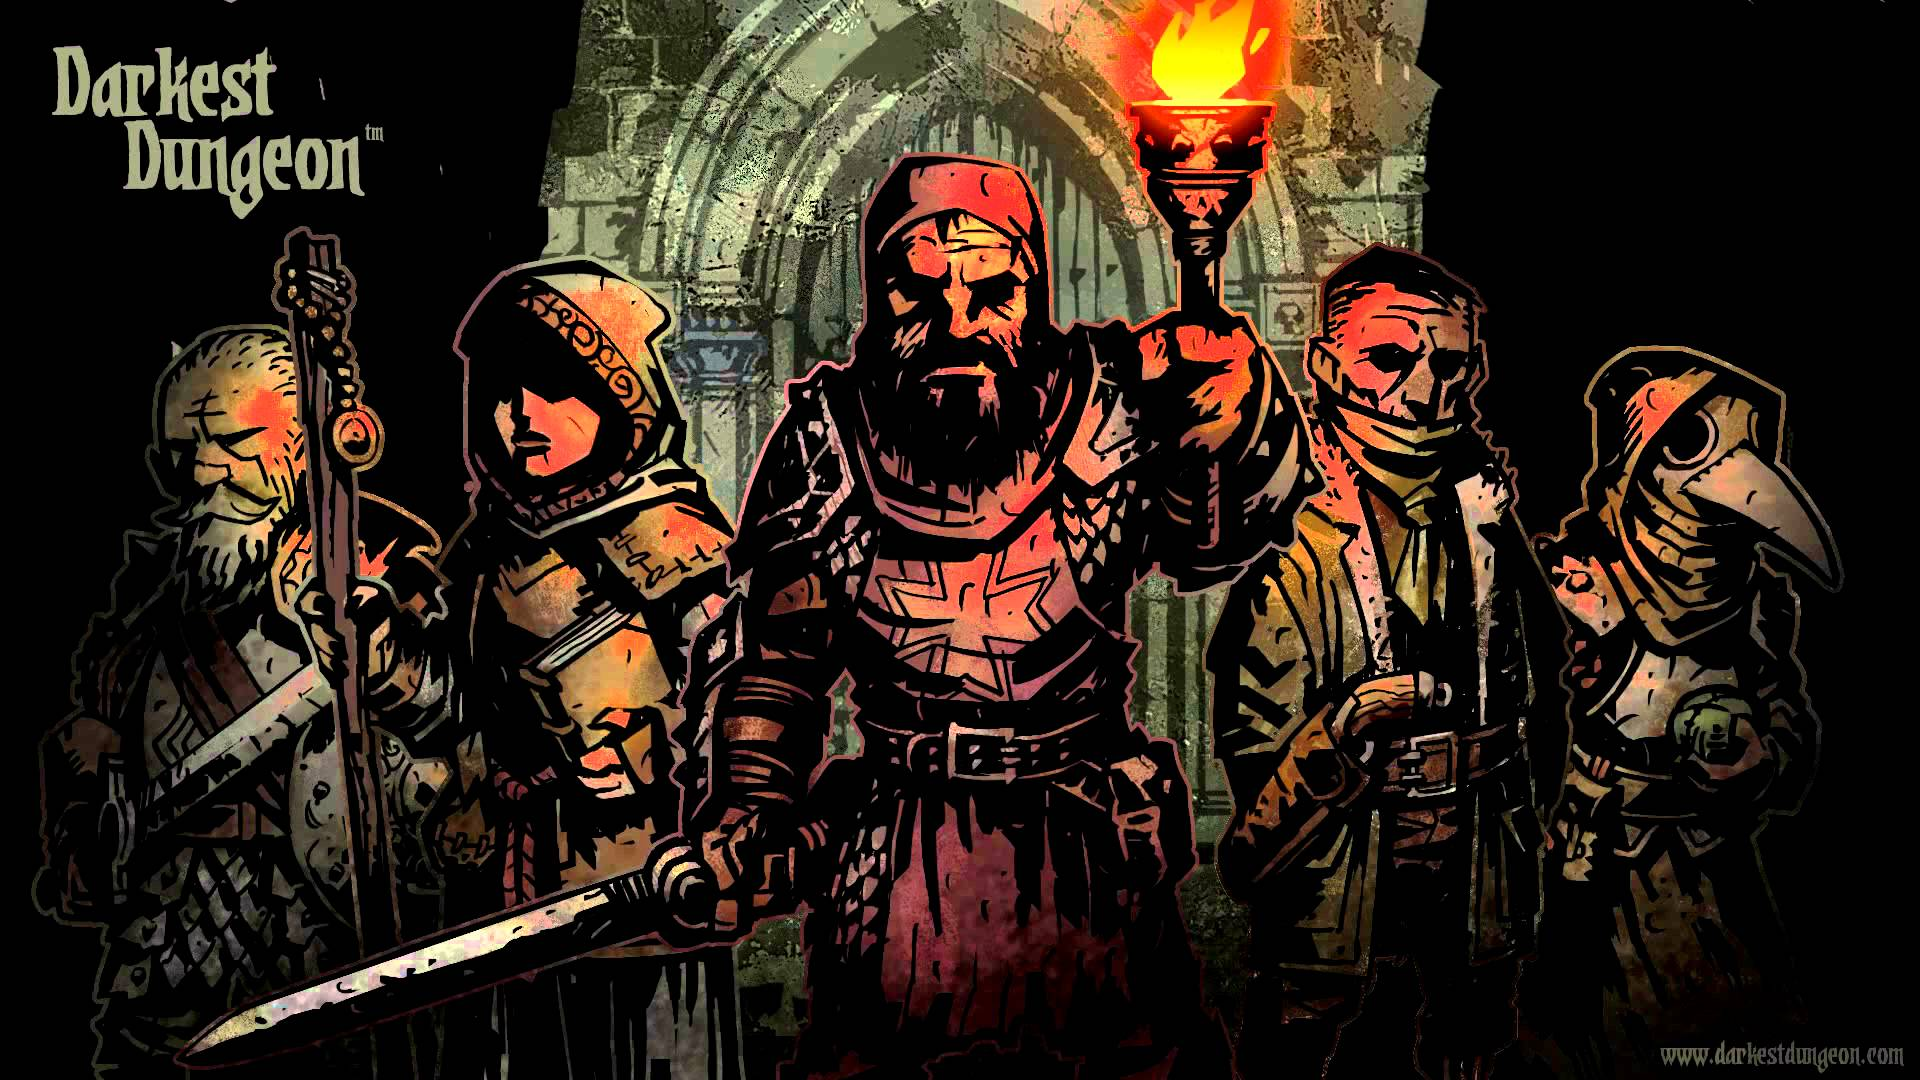 Darkest Dungeon (PC / PS4 / PS Vita / Switch)